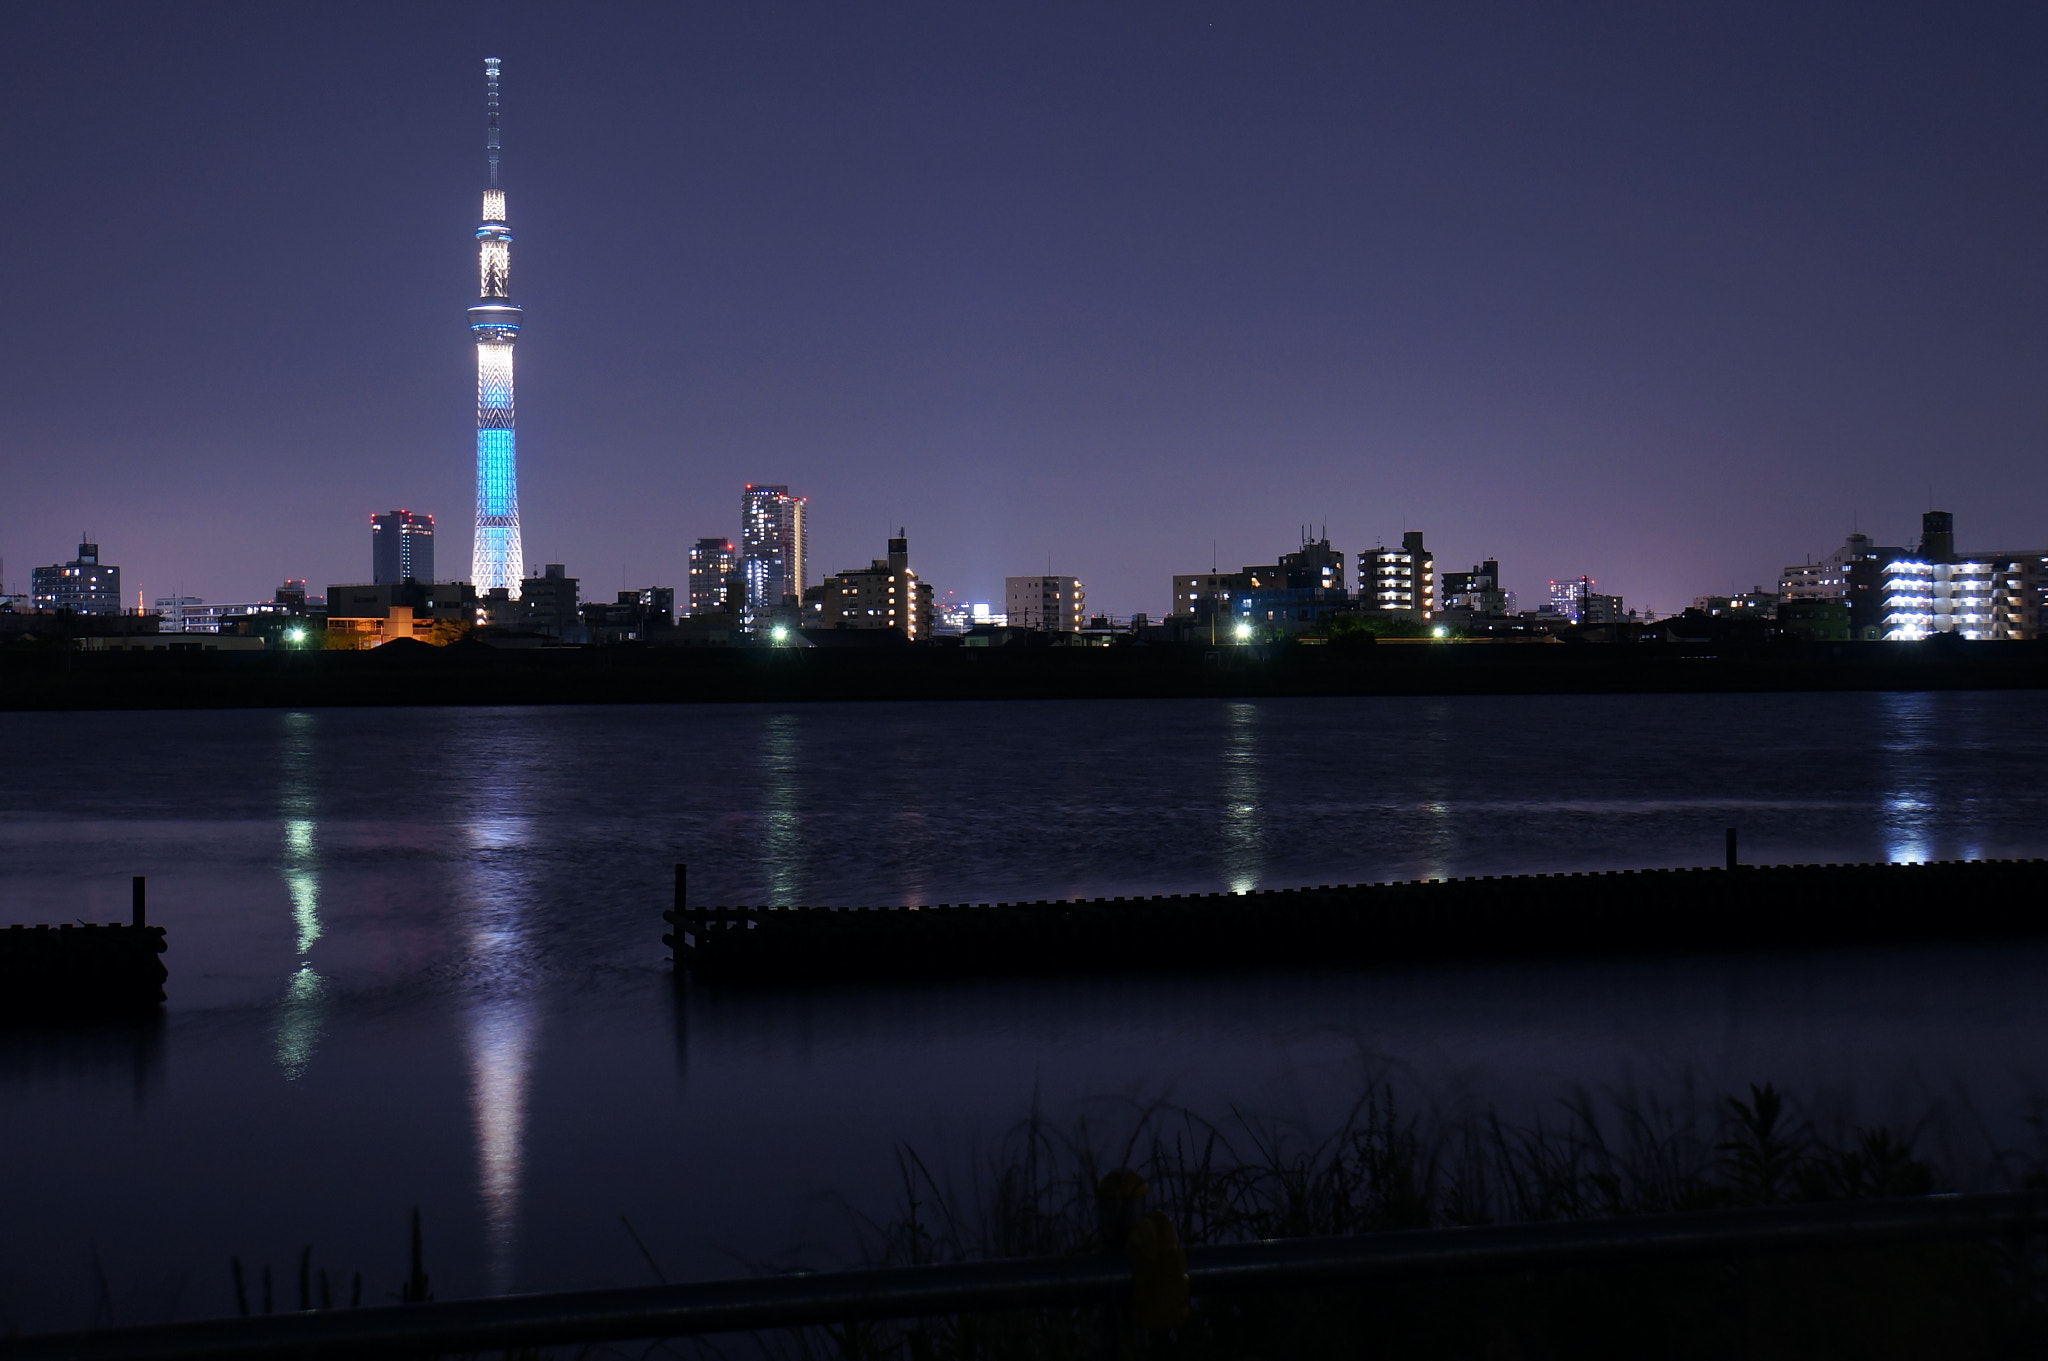 Photograph across the river by shuso itaoka on 500px